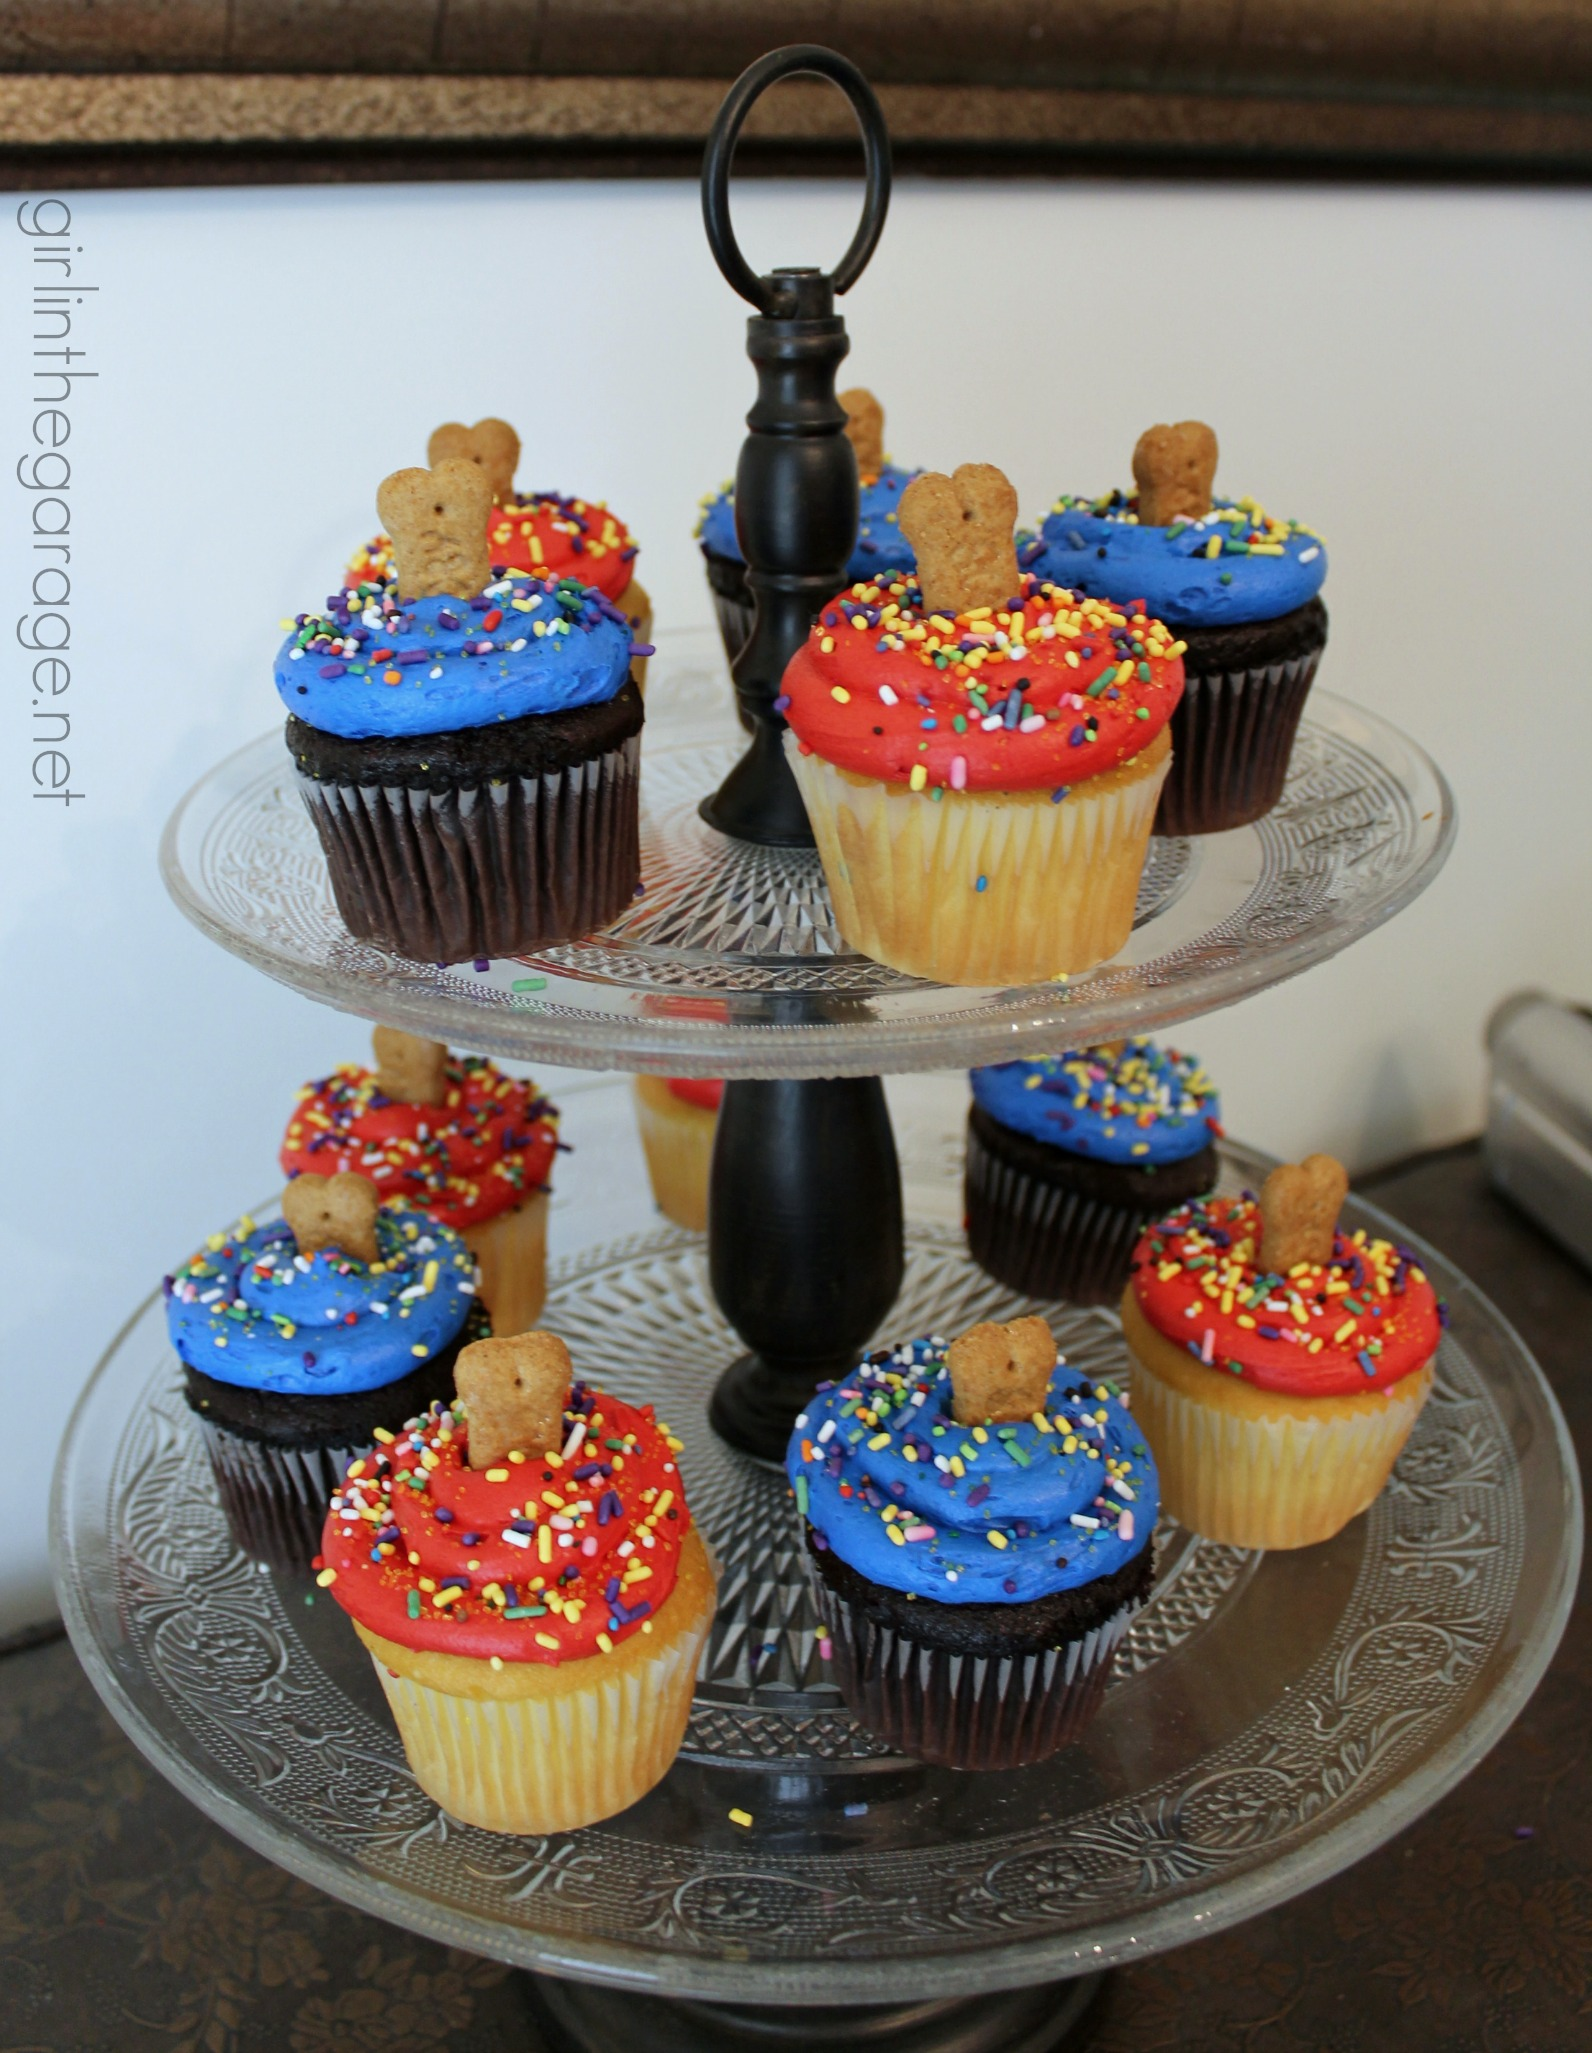 Paw Patrol Birthday Party Cupcakes With Graham Cracker Dog Treats As Toppers